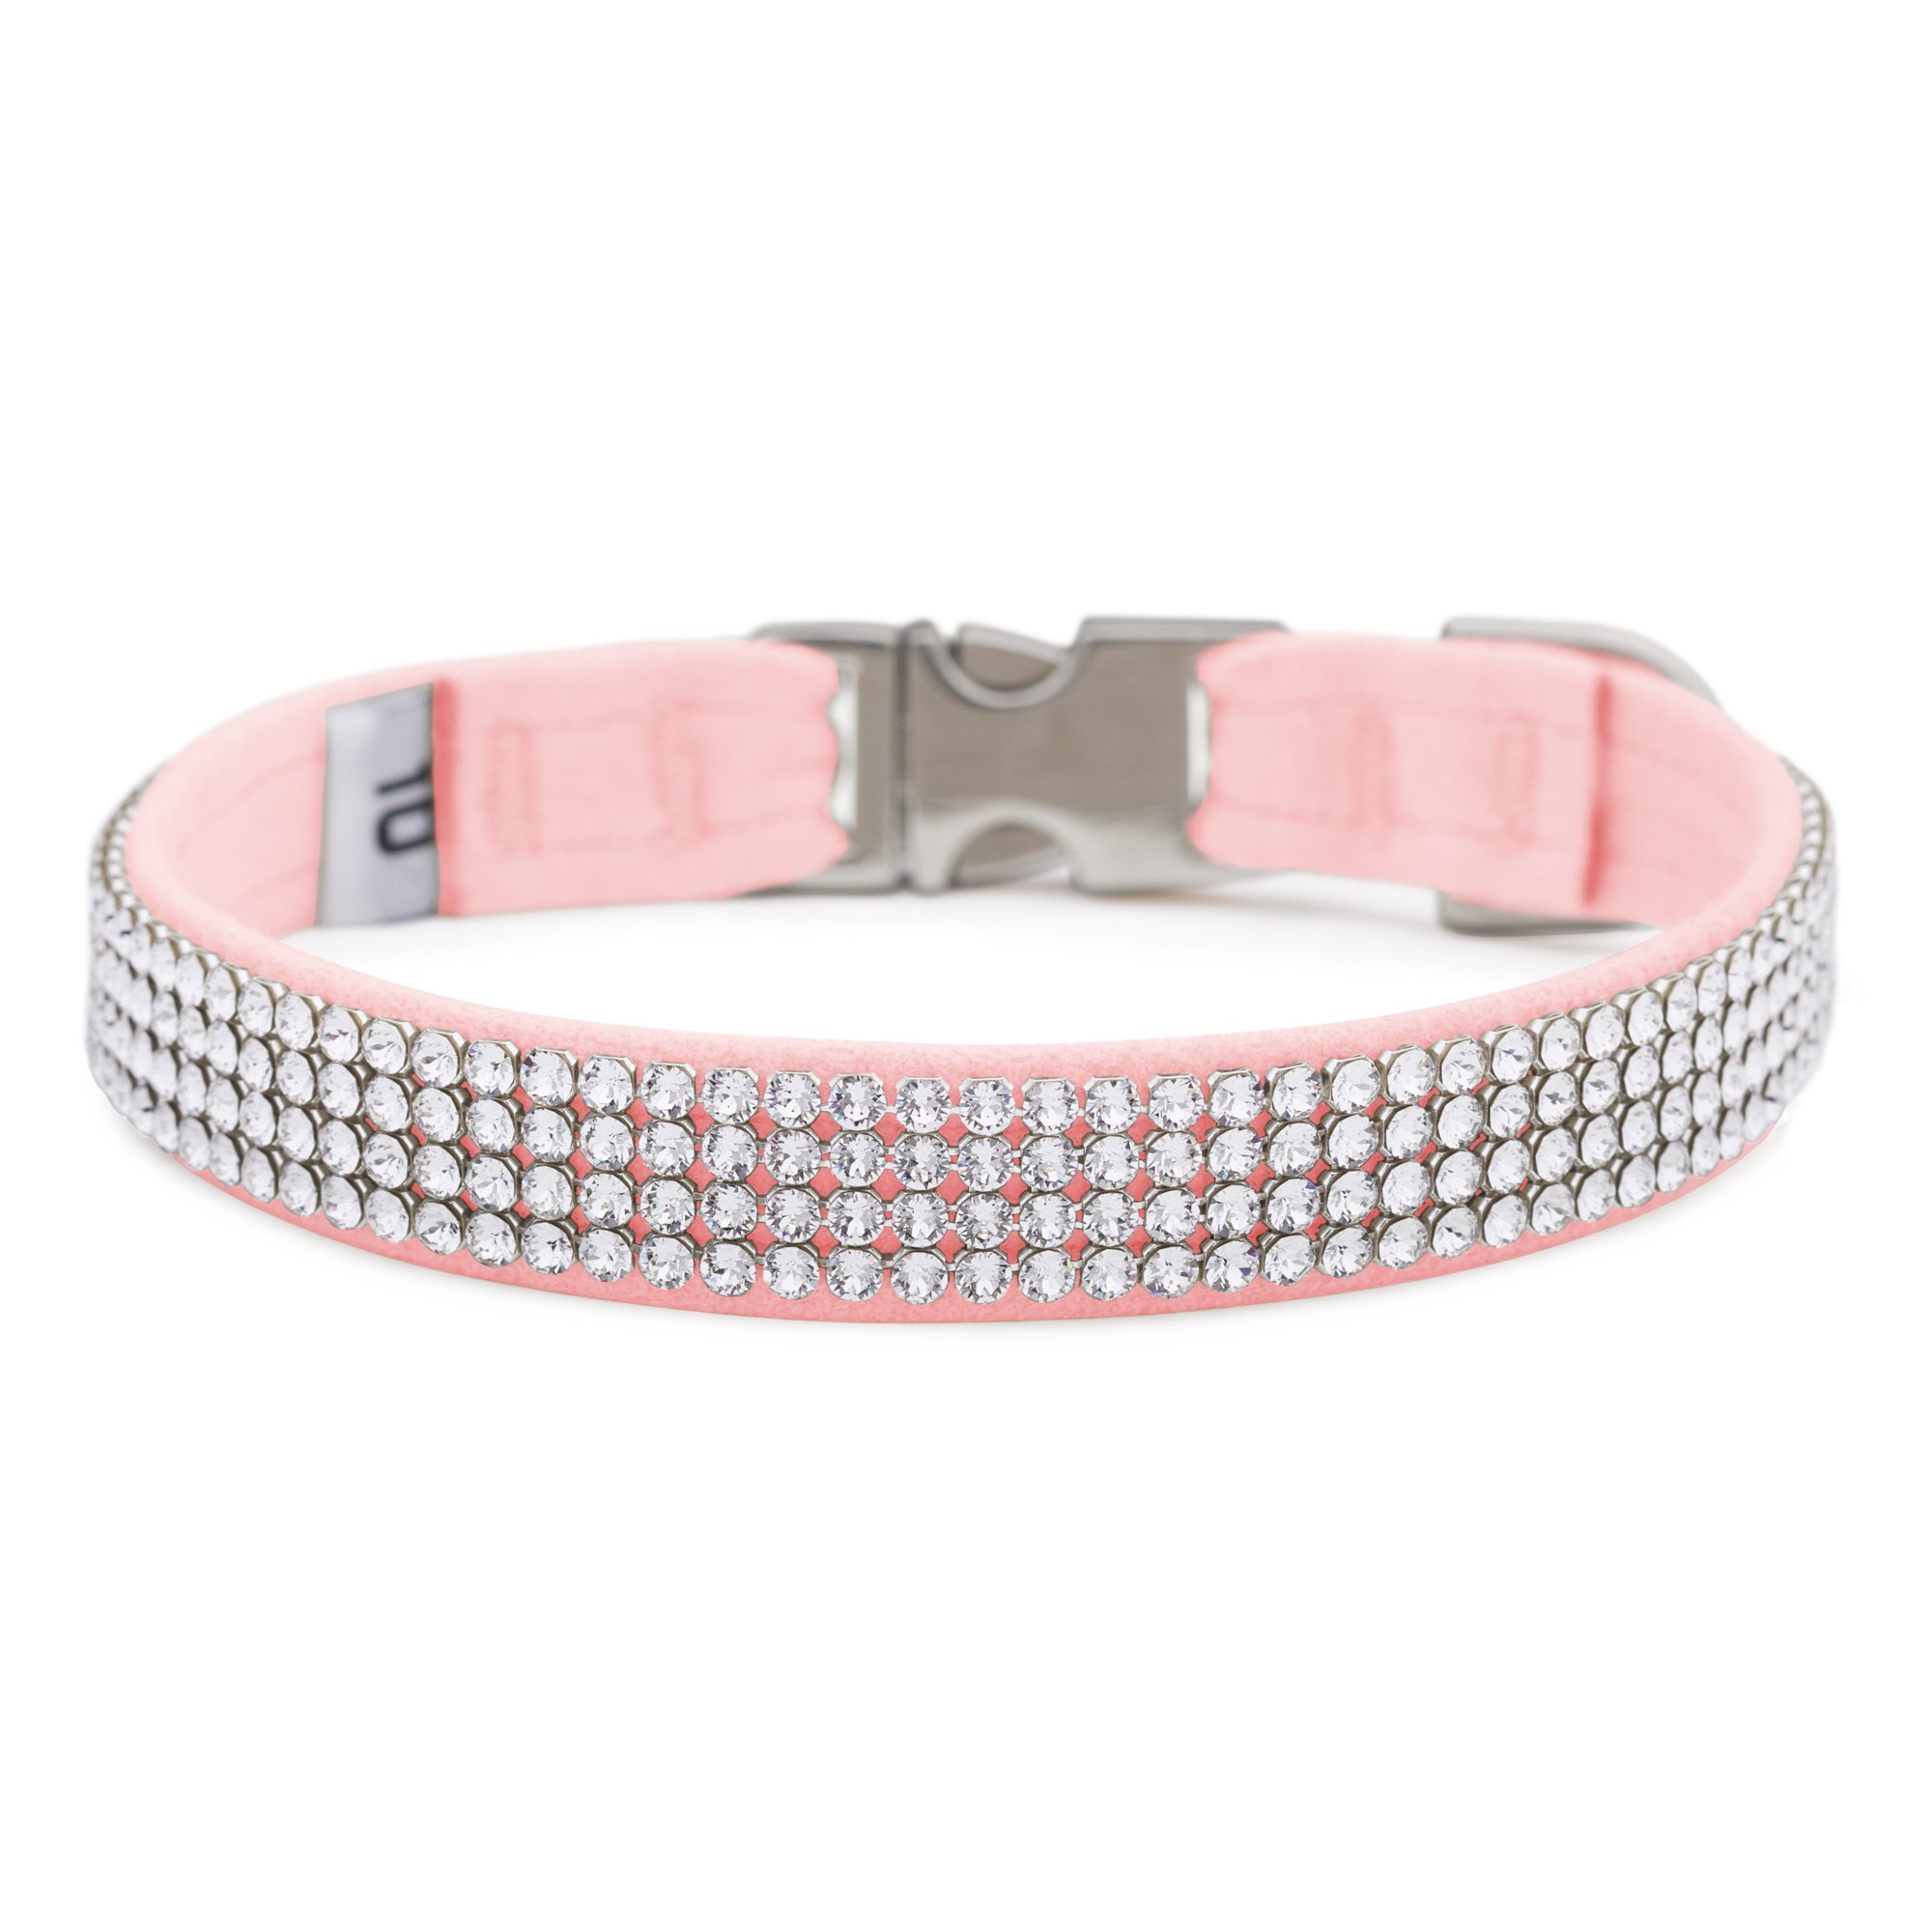 Puppy Pink 4 Row Giltmore Perfect Fit Collar